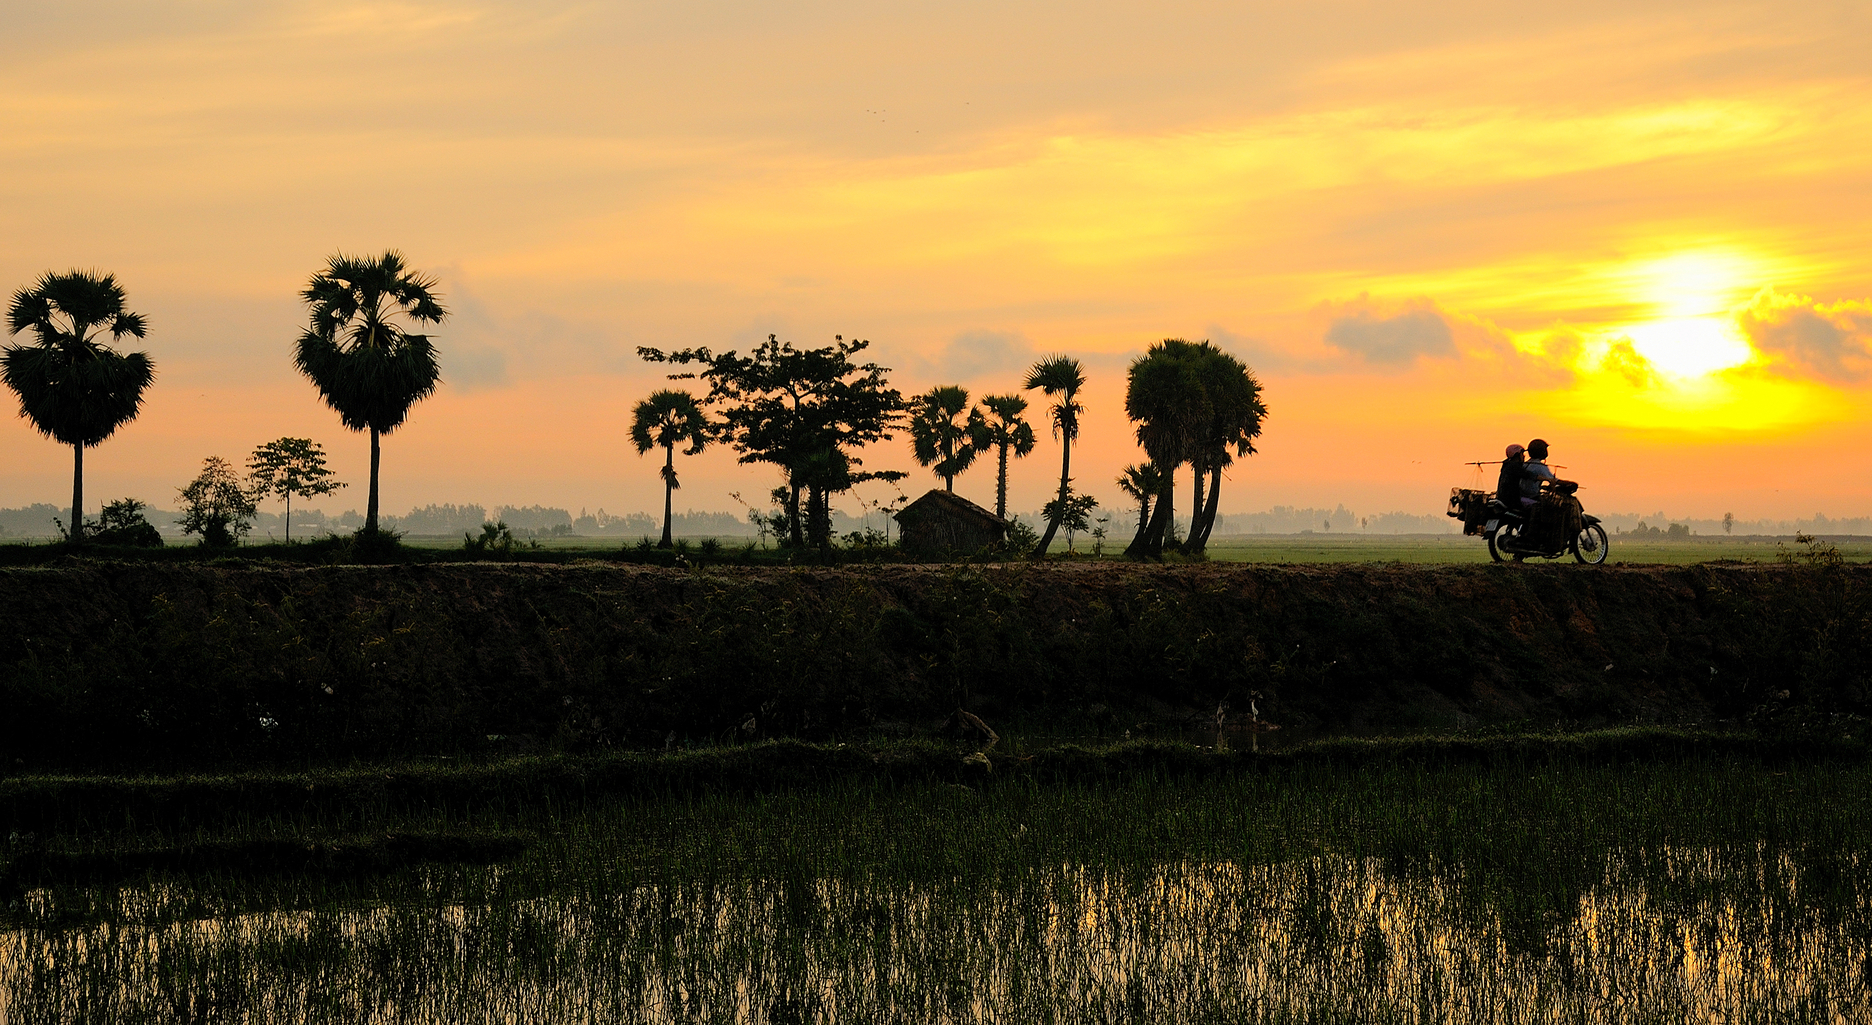 Sunrise over rice paddy in Mekong Delta, An Giang, Vietnam